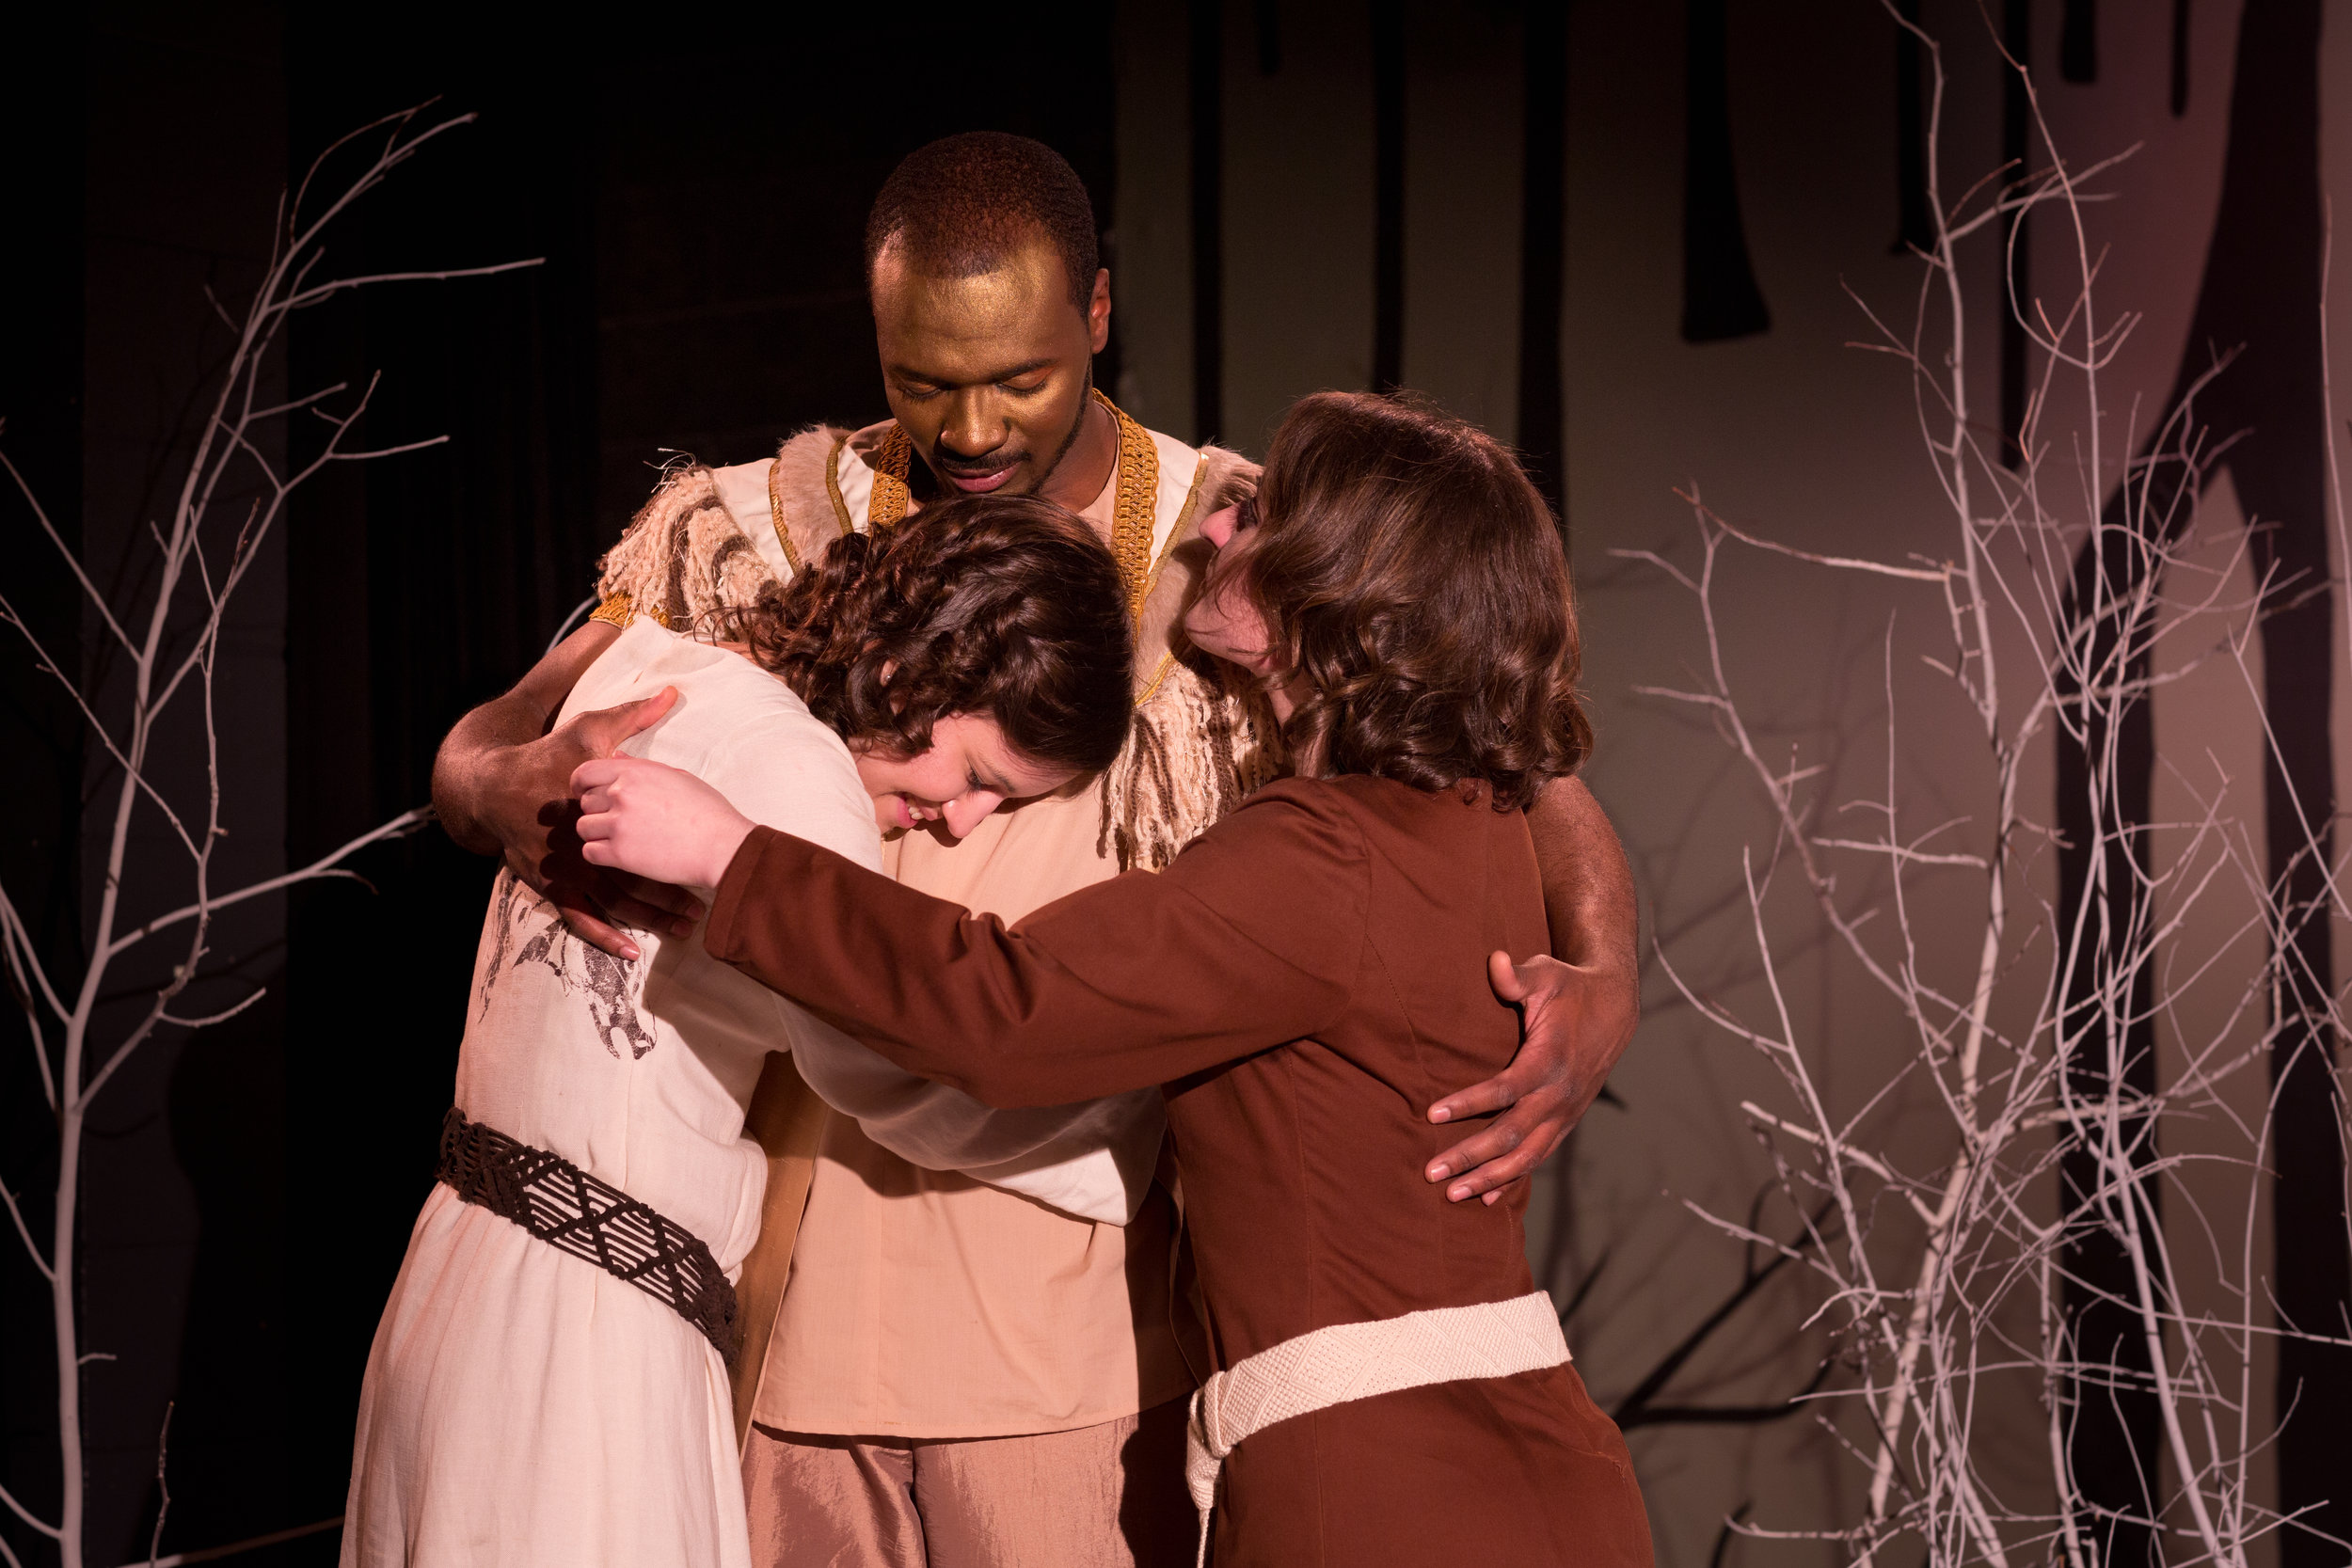 The Lion the Witch and the Wardrobe adapted by Joseph Robinette